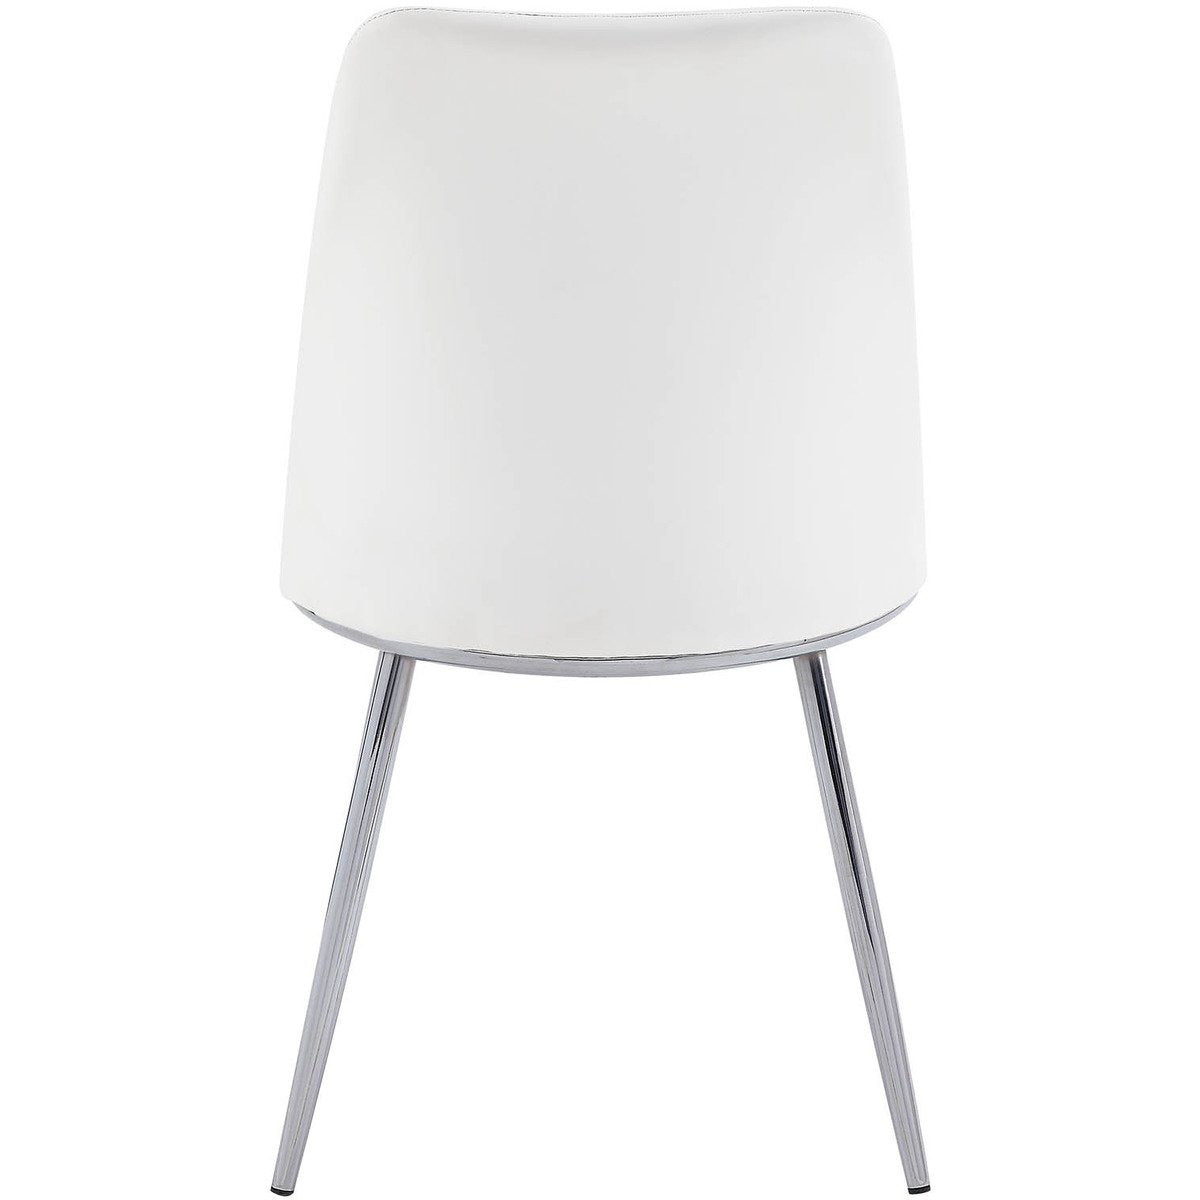 Dining Chairs - Leatherette Metal Side Chair With Angled Legs, Set Of 2, White